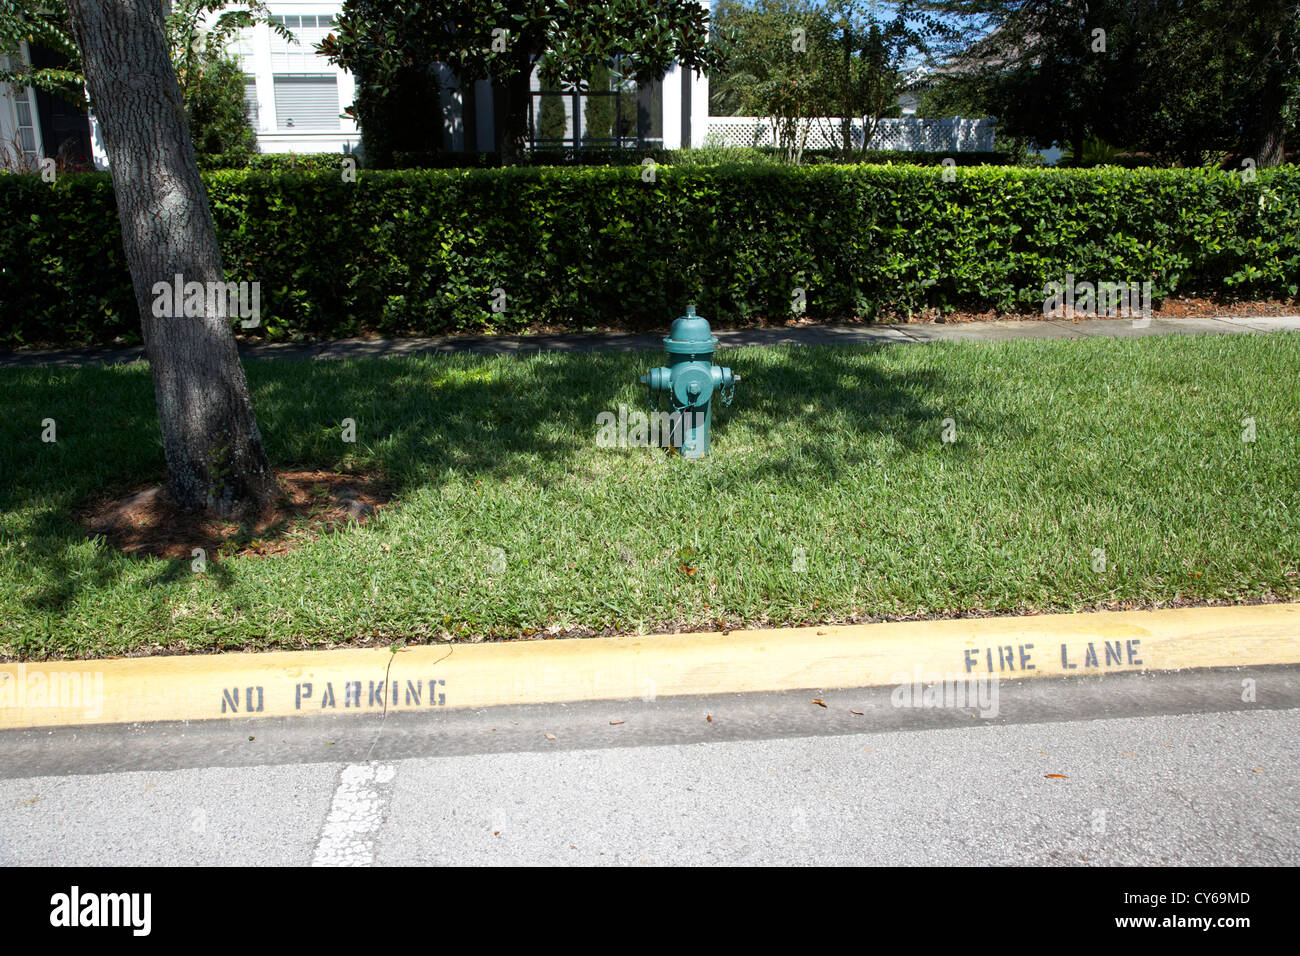 fire hydrant no parking fire lane curb in residential area of celebration florida usa - Stock Image